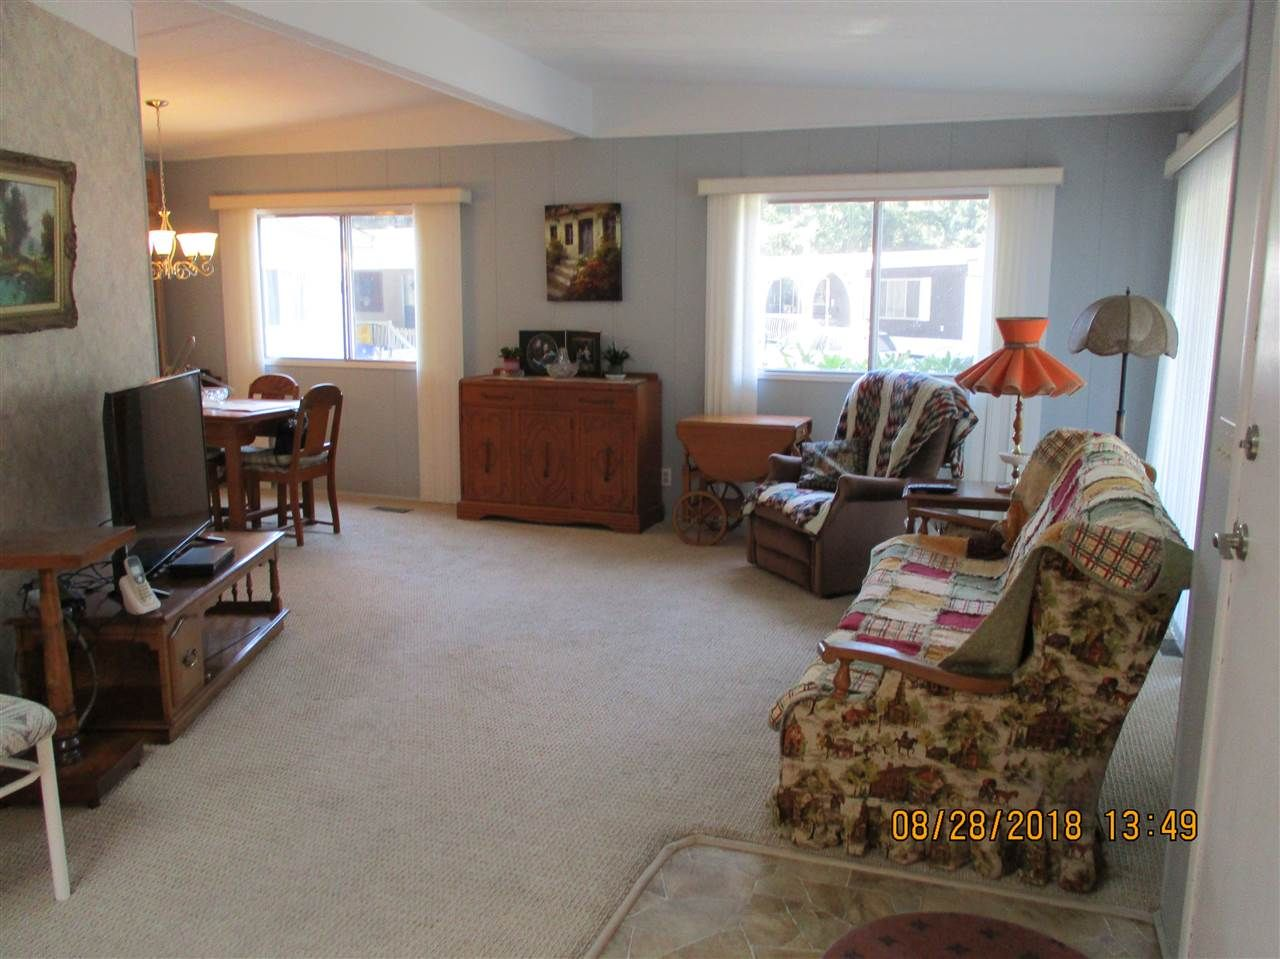 """Photo 2: Photos: 57 2305 200 Street in Langley: Brookswood Langley Manufactured Home for sale in """"CEDAR LANE"""" : MLS®# R2357125"""